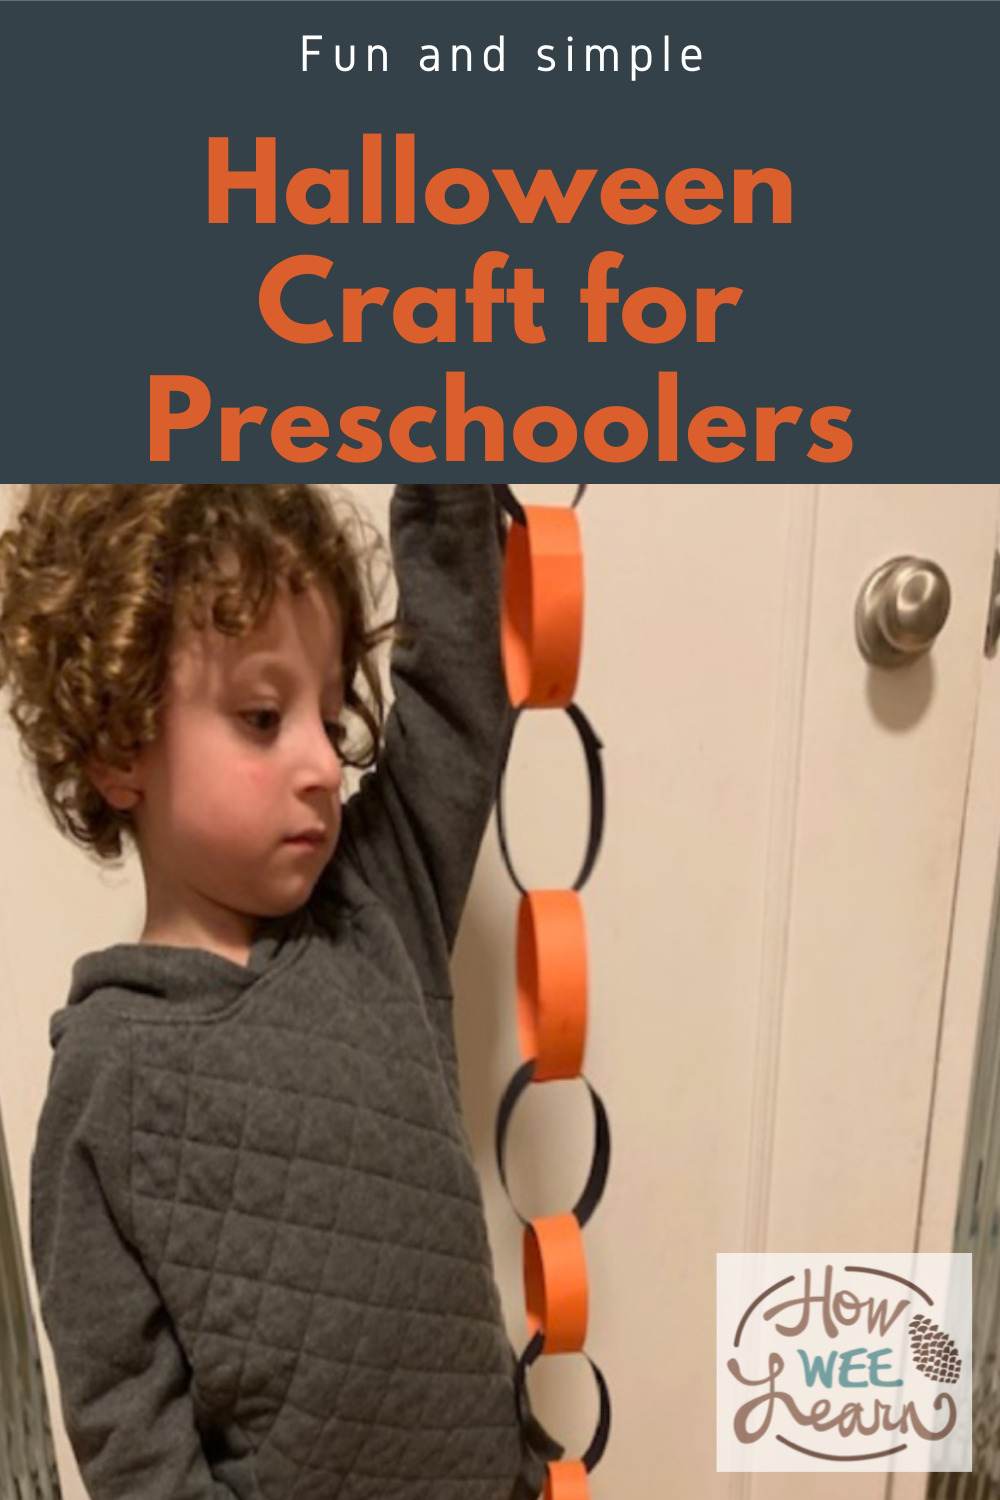 This Halloween craft for preschoolers involves learning about patterns in such a fun and simple way. We had a great time with simple craft and my preschooler learned a lot!